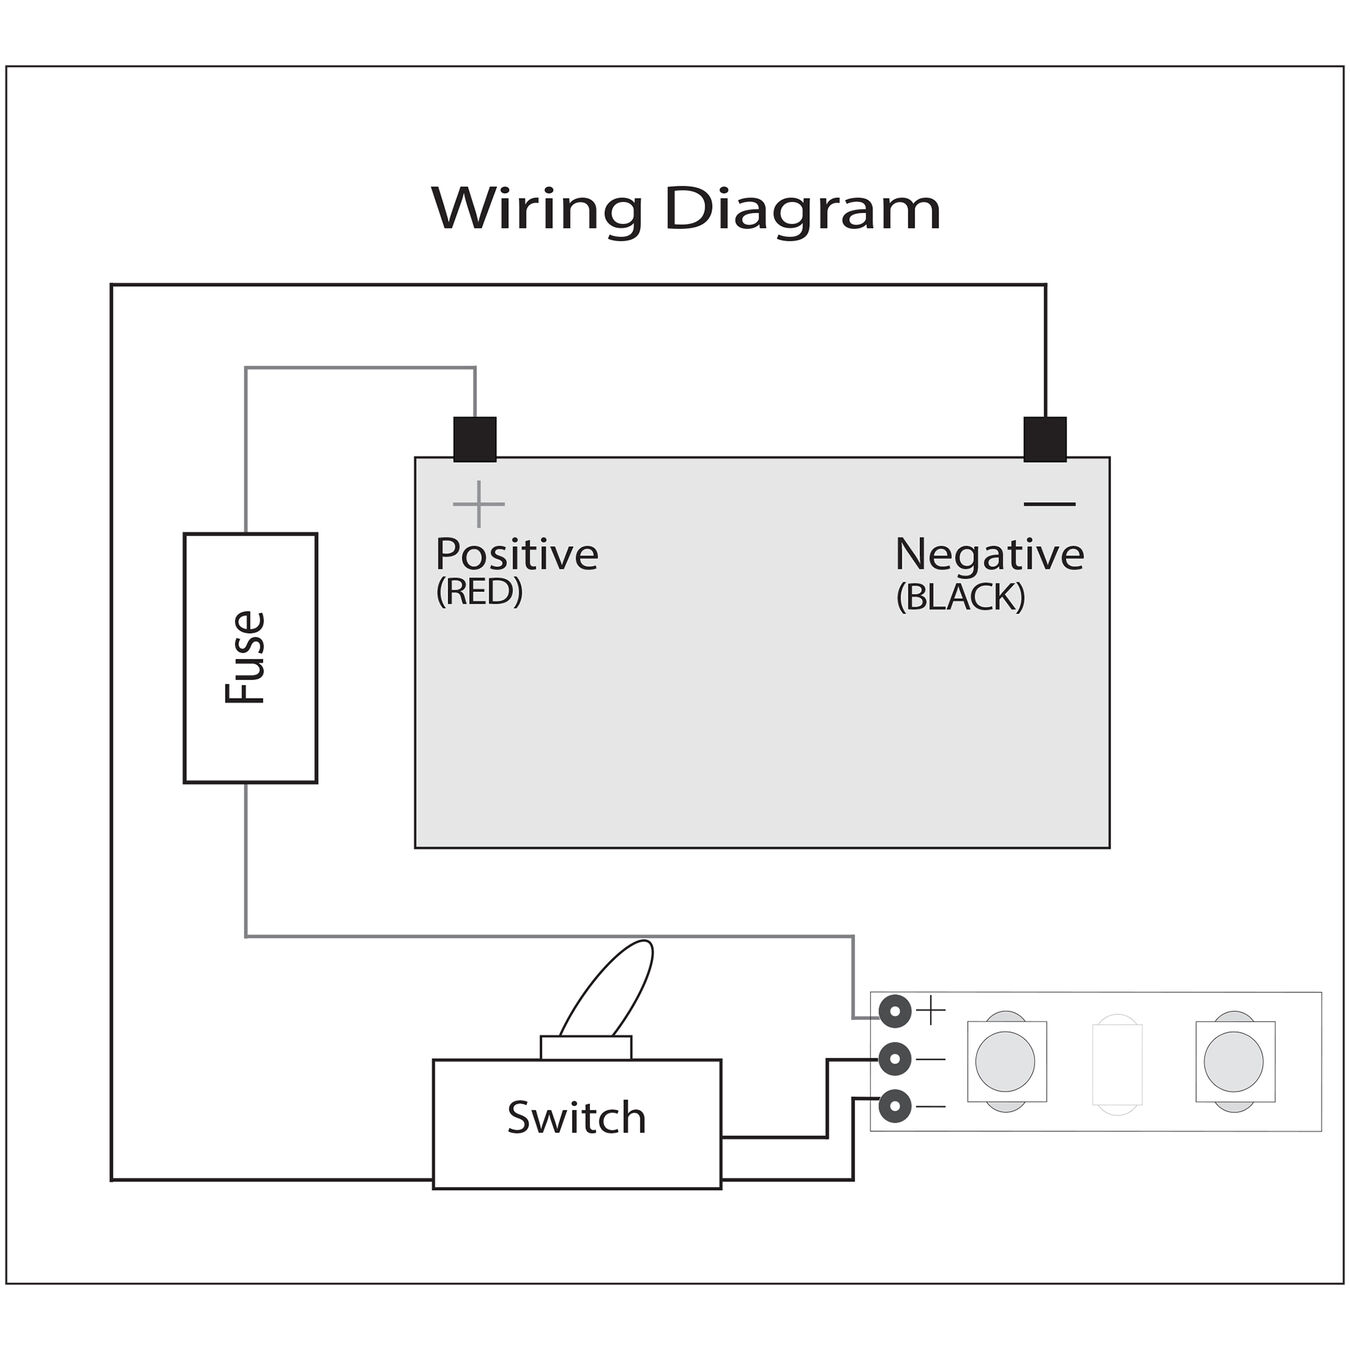 Wiring Diagram For Pontoon Boat